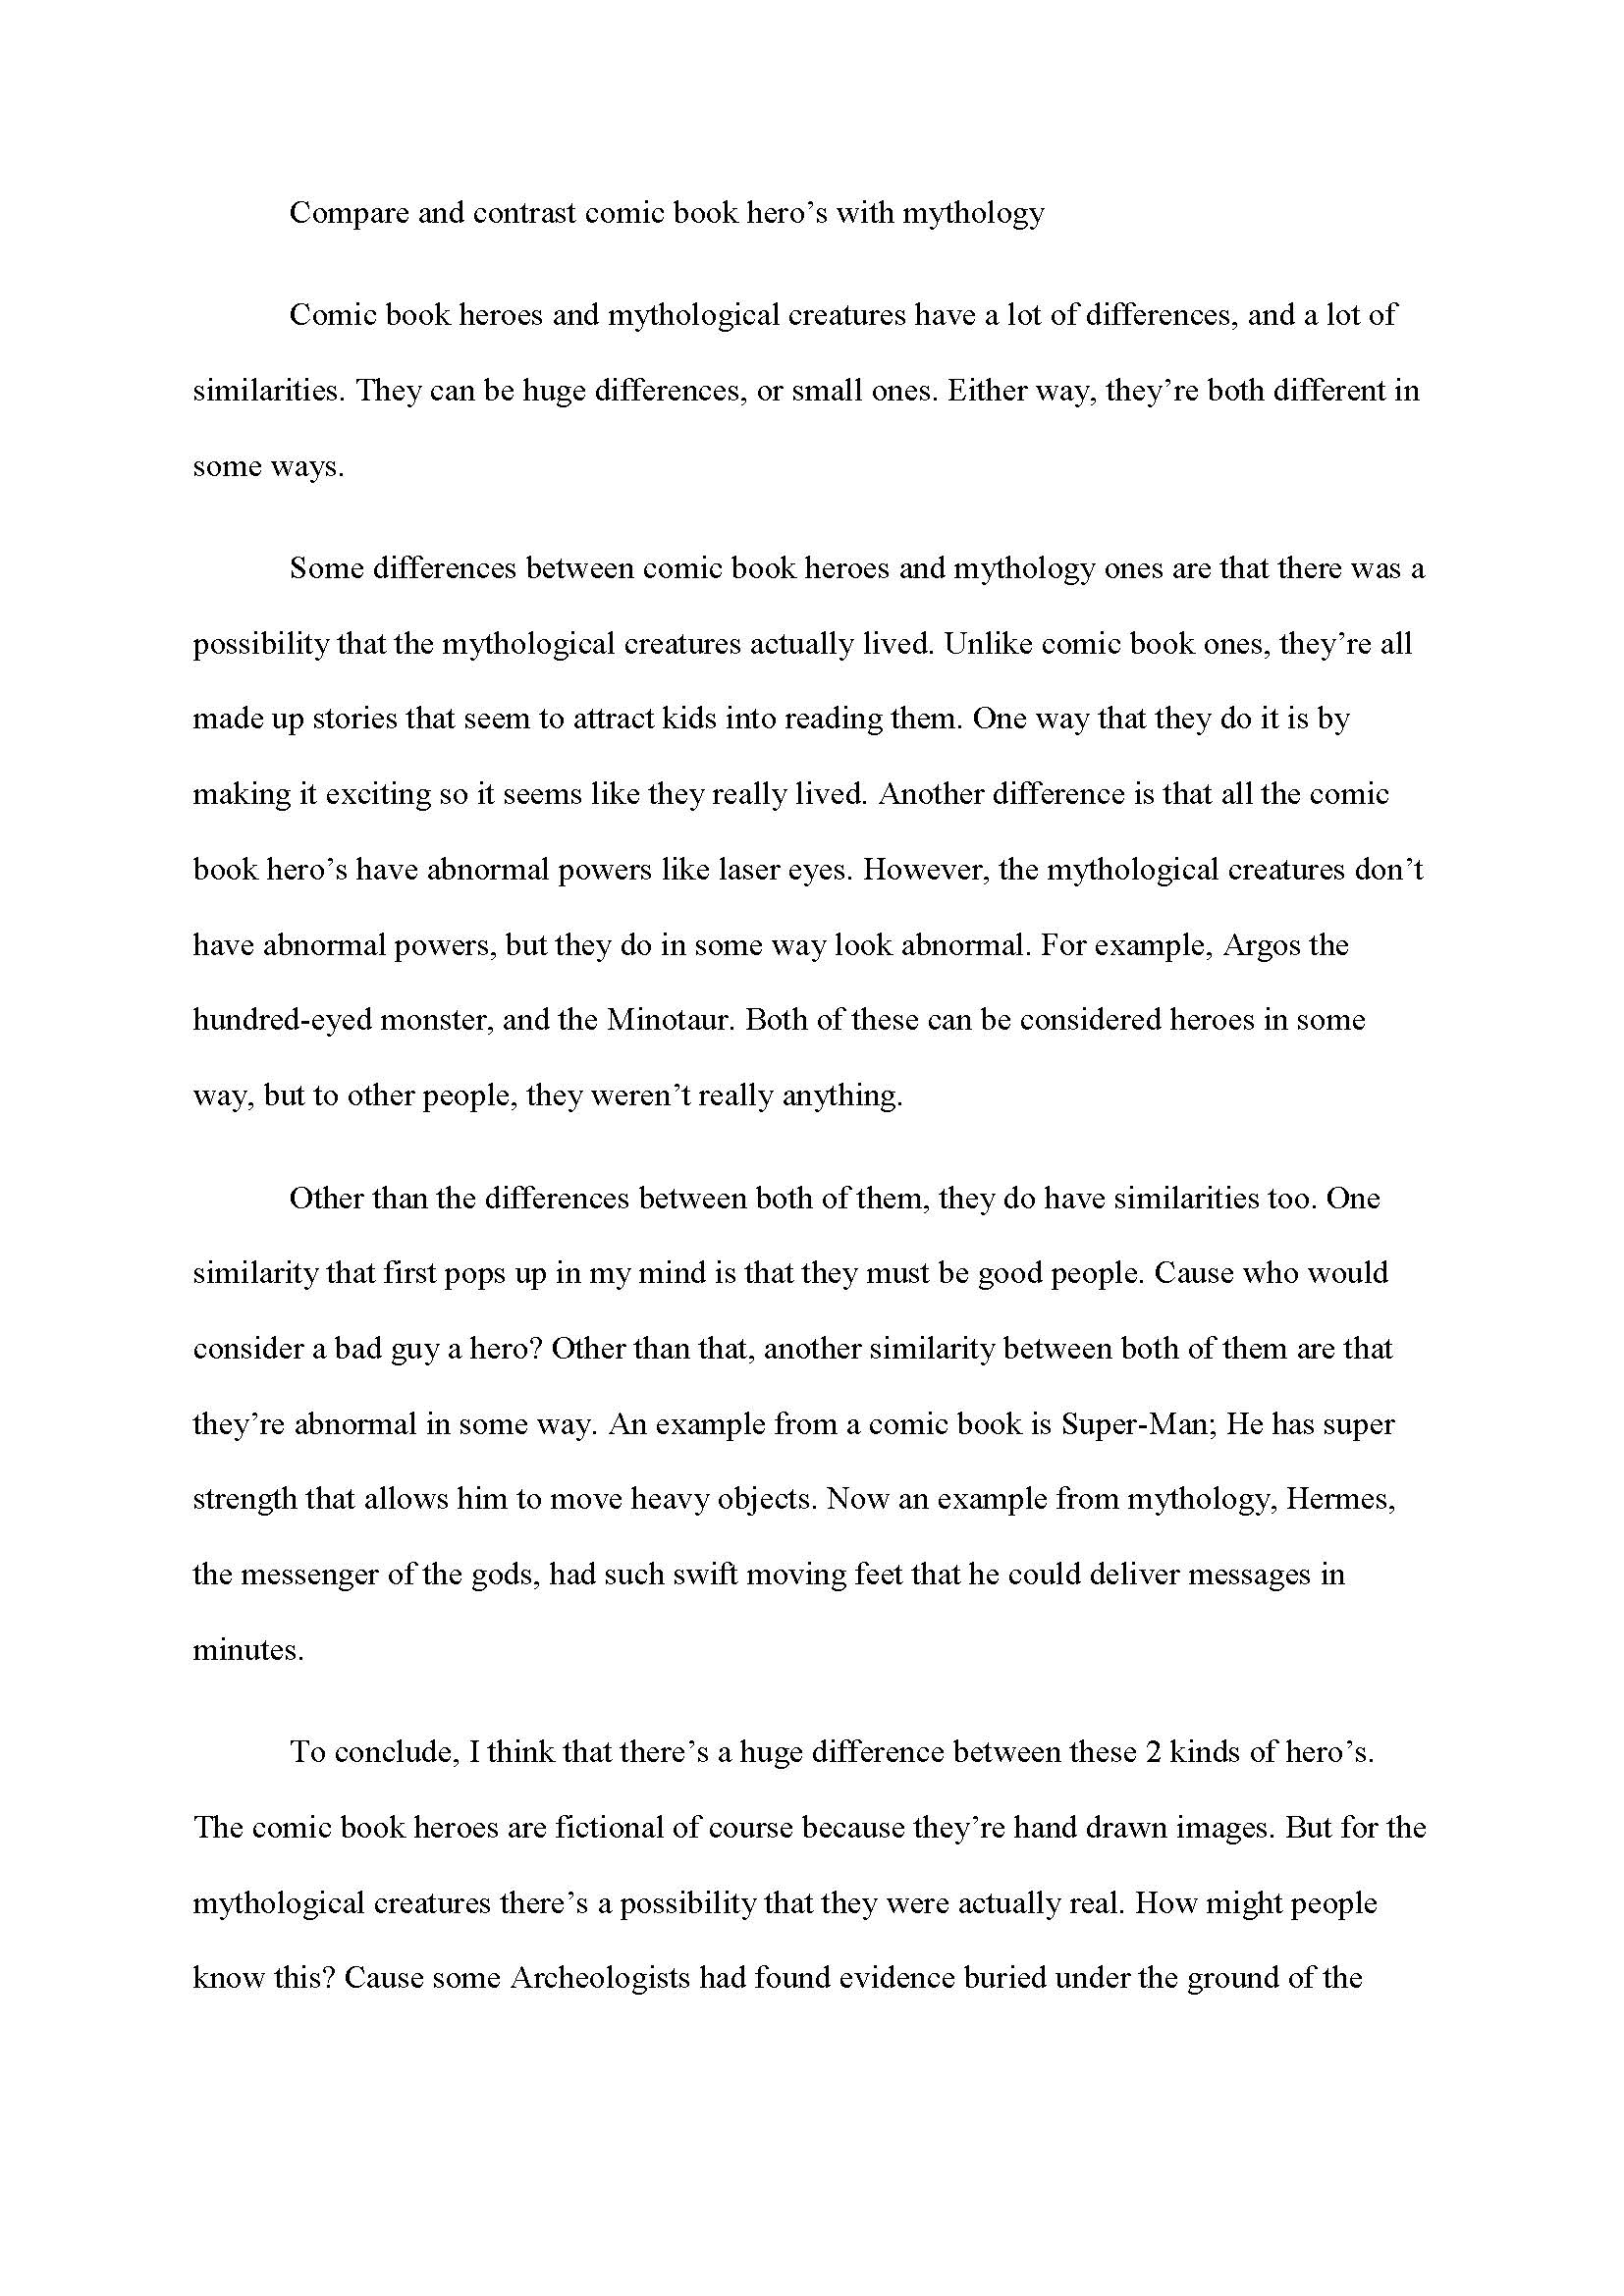 014 Essay Example Compared Contrast Sample How To Start Of Breathtaking An Application About Yourself Write Argumentative Step By Pdf Conclusion Paragraph Full